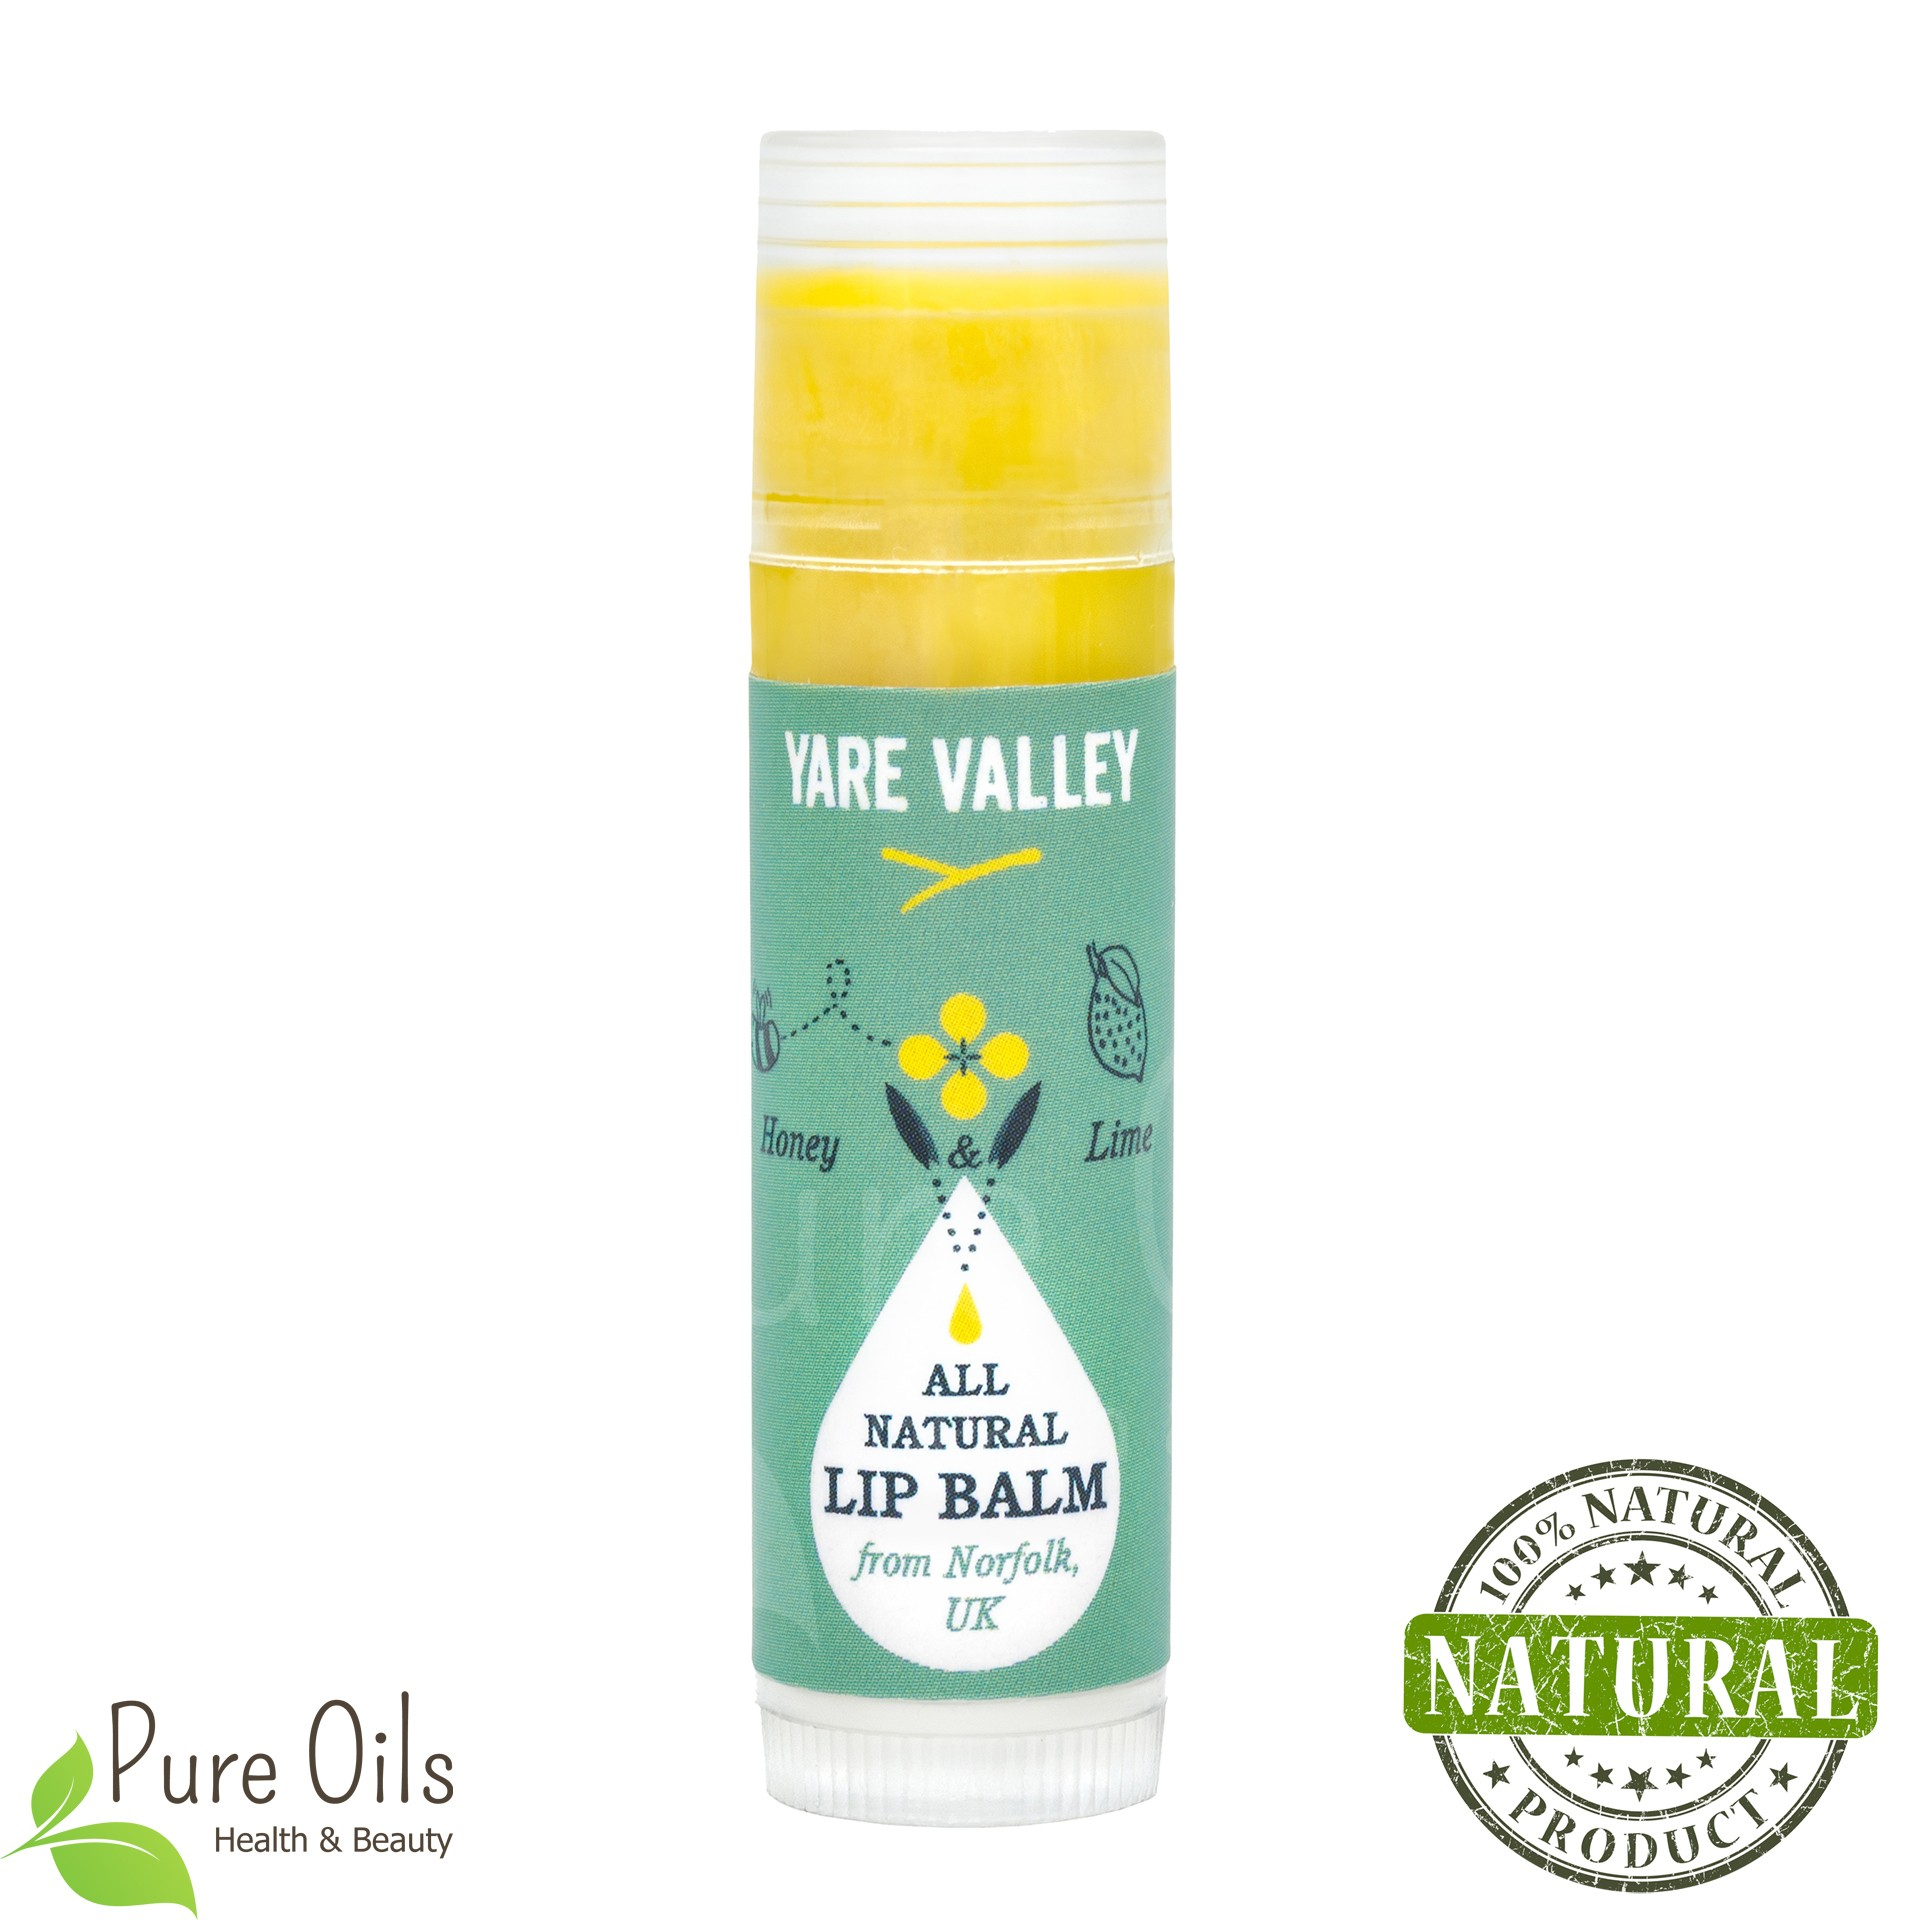 Honey and Lime Natural Lip Balm Stick, Yare Valley